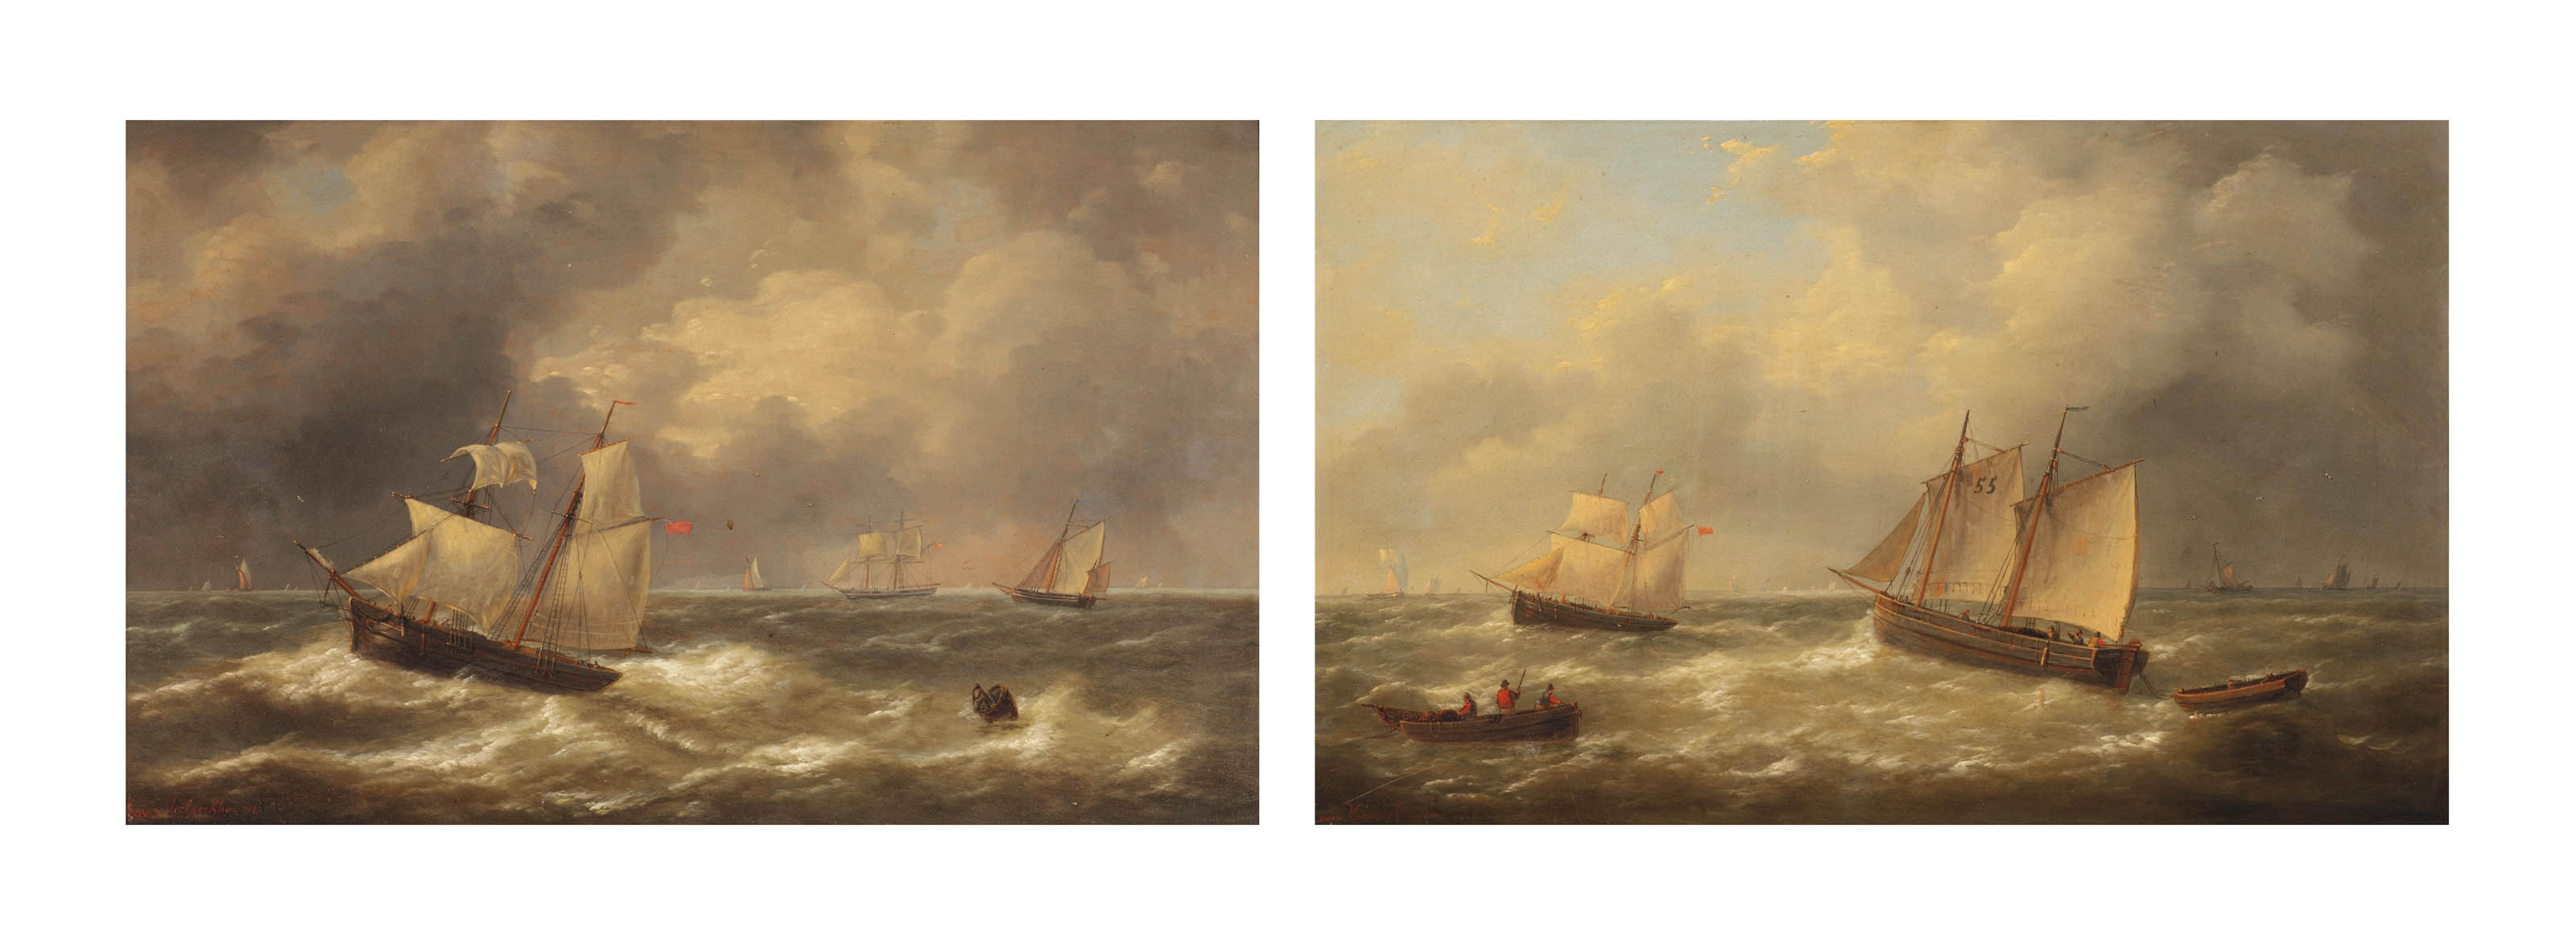 Shipping in choppy seas; and Sailing vessels at sea with other boats beyond